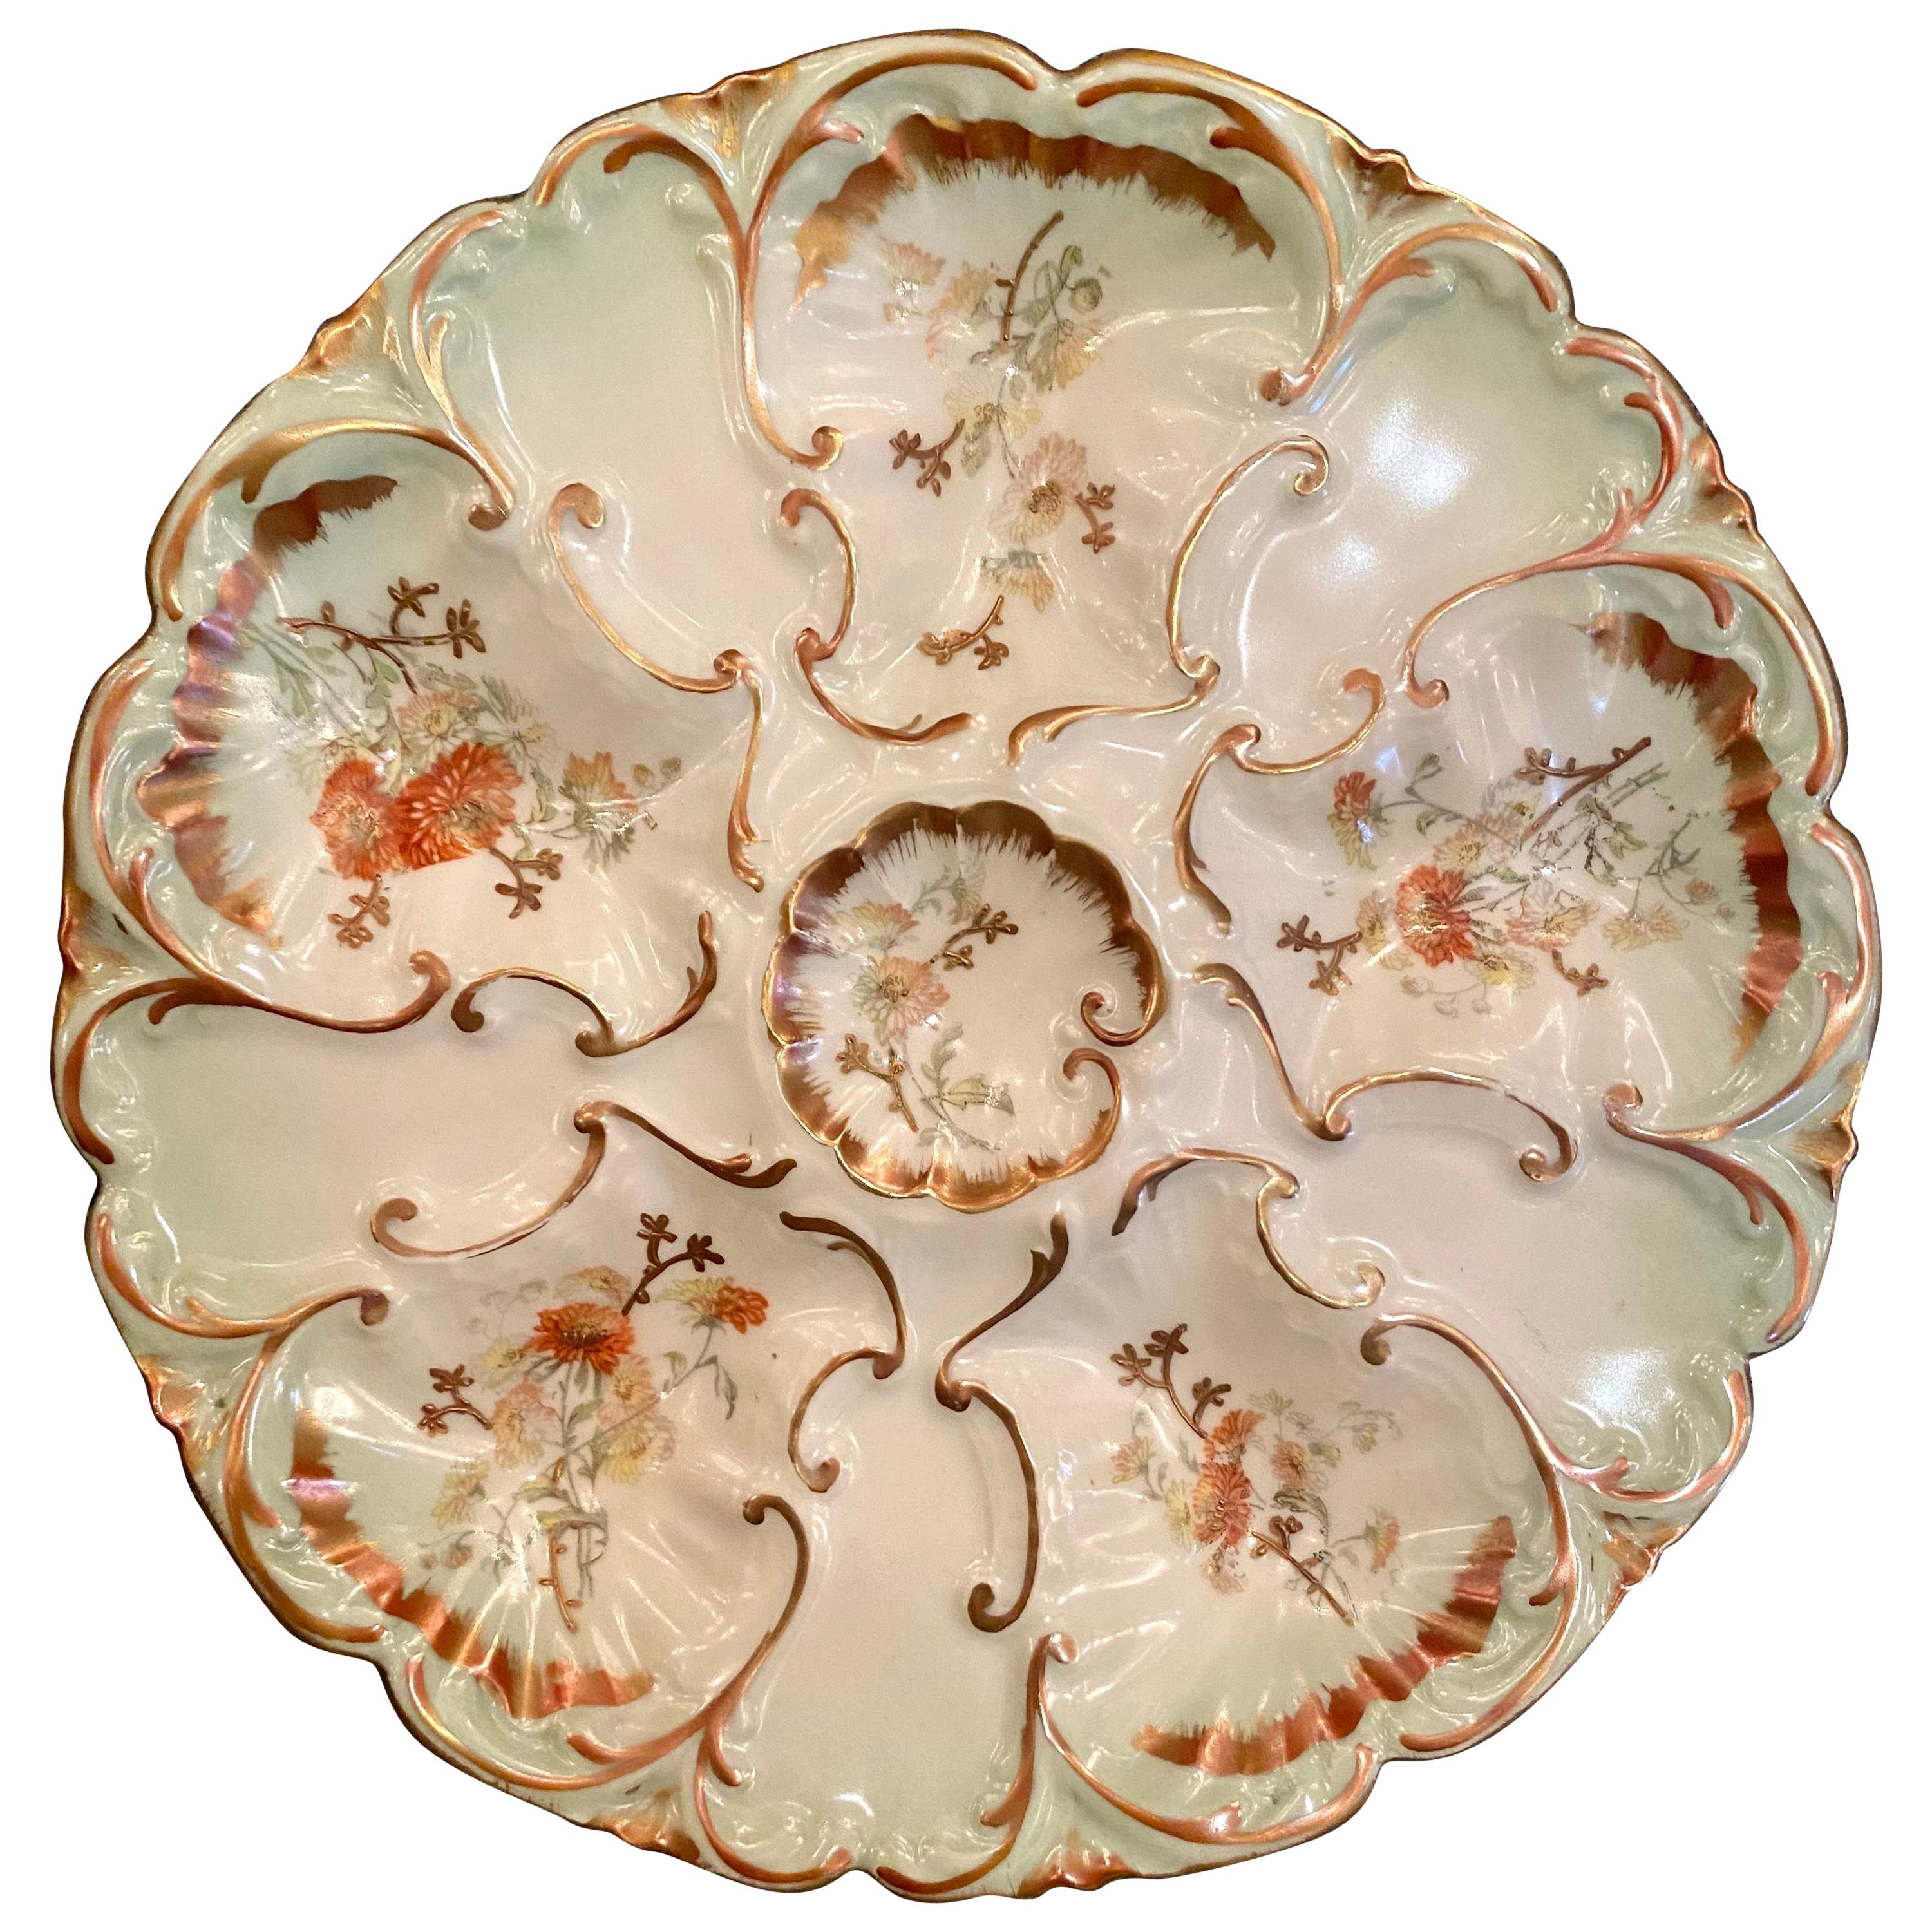 Antique French Hand Painted L.S. & S. Limoges Porcelain Oyster Plate circa 1870s